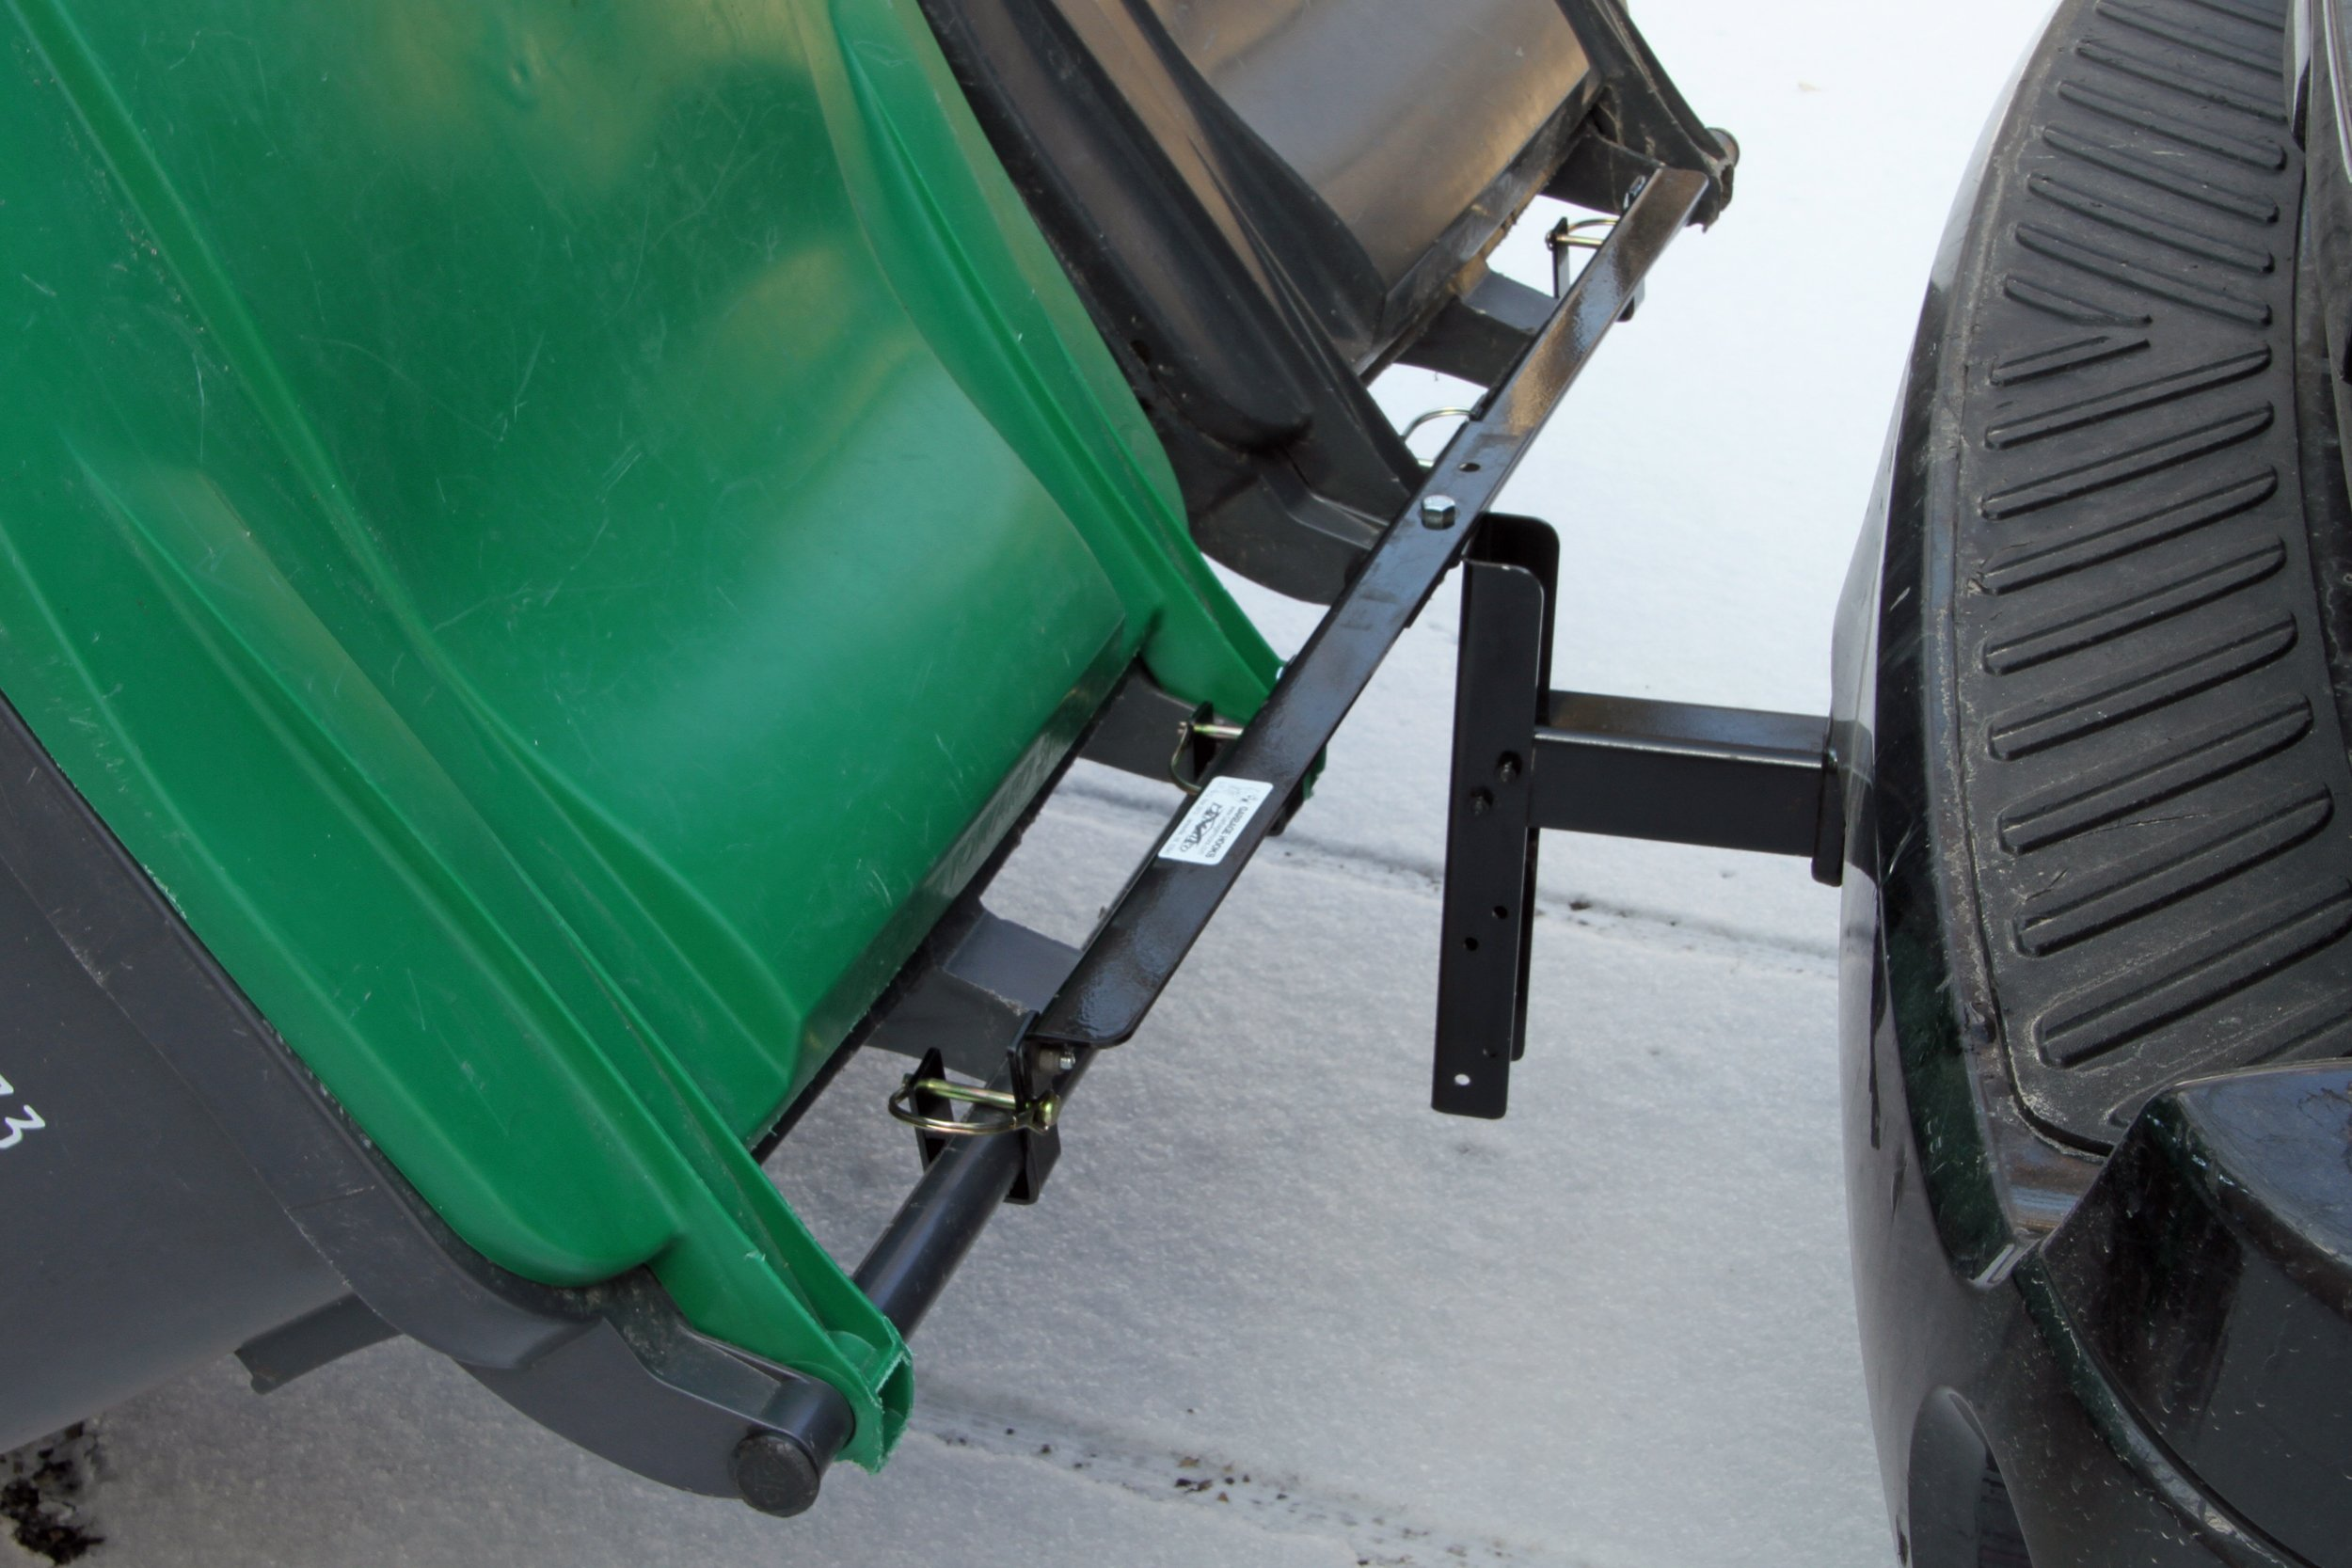 Dual-Can Garbage Hauling Hitch cans Cannot Come Loose. Garbage Hooks are The Perfect Solution for Getting Wheeled Garbage constrainers Out When You Have a Long/steep Driveway, or challenging Terrain by Garbage Commander (Image #3)